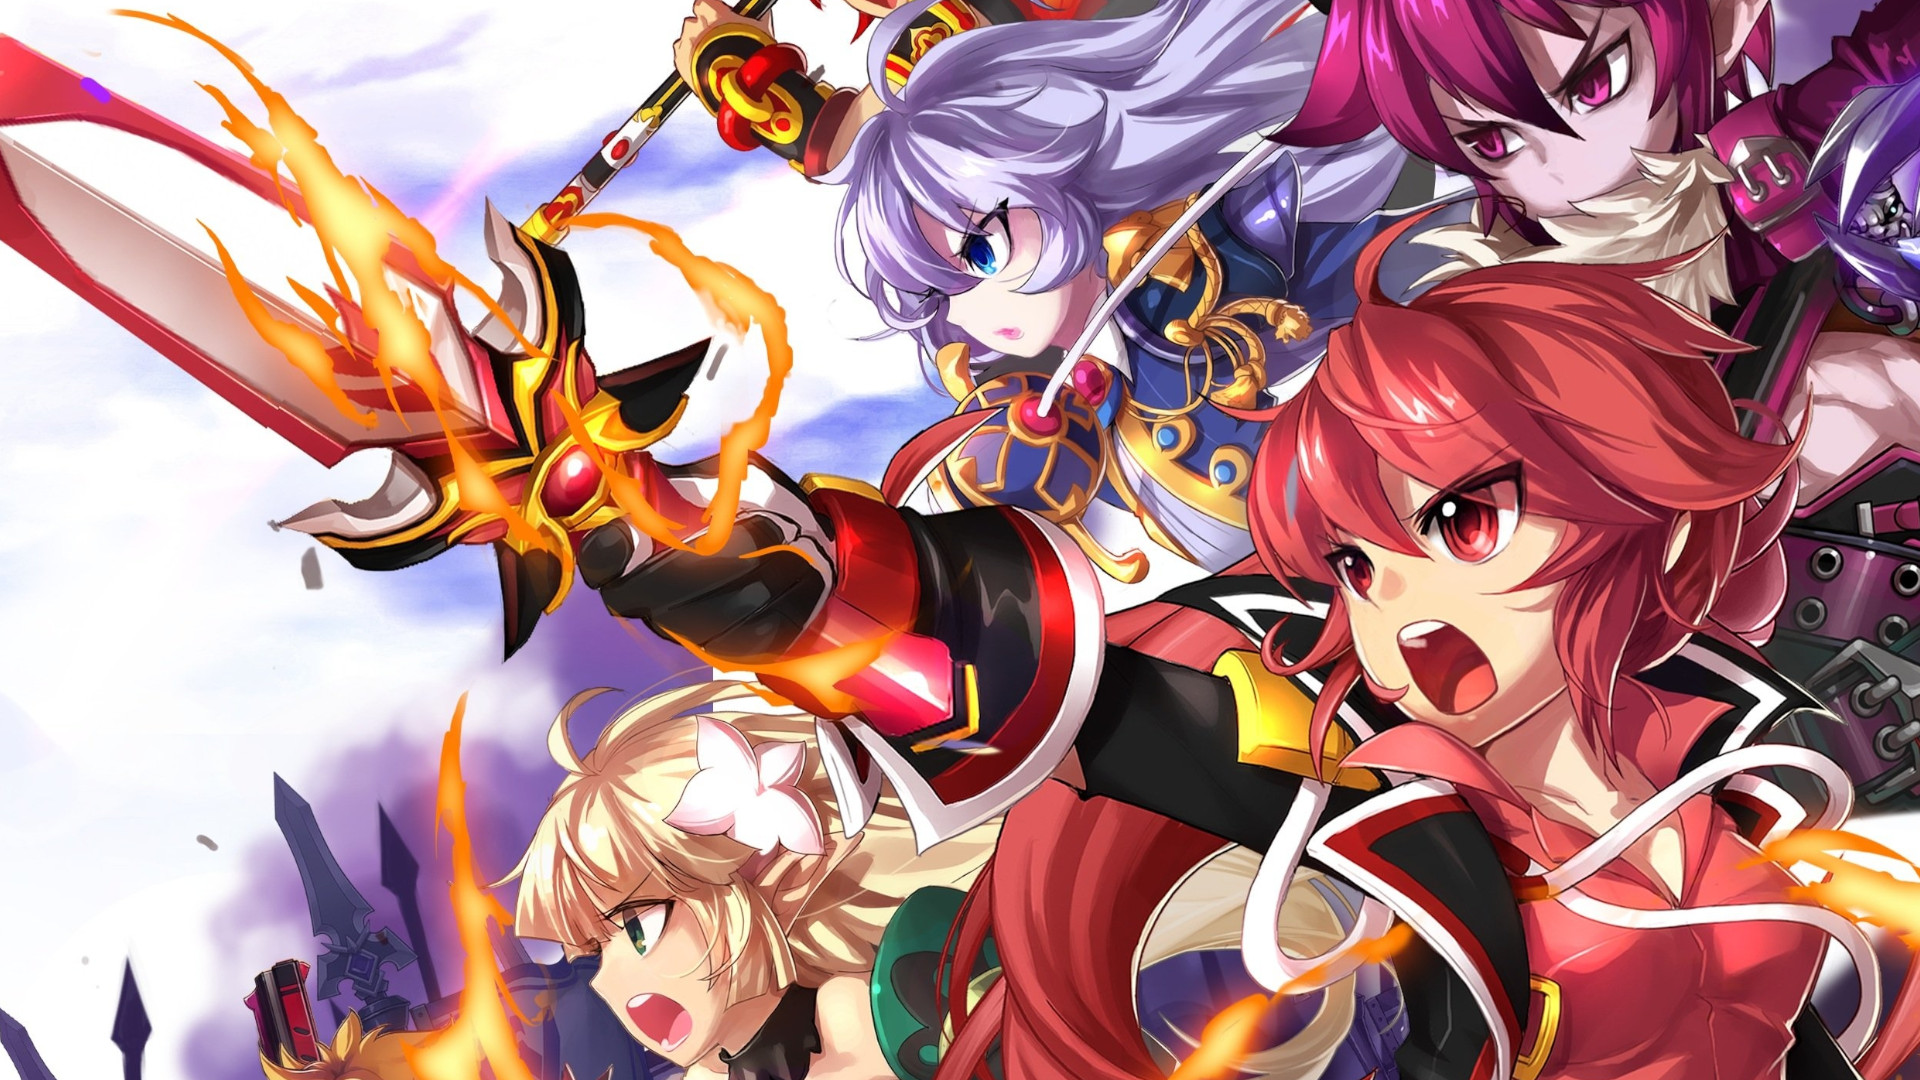 MMO Grand Chase returns and instantly reaches Steam's top 10